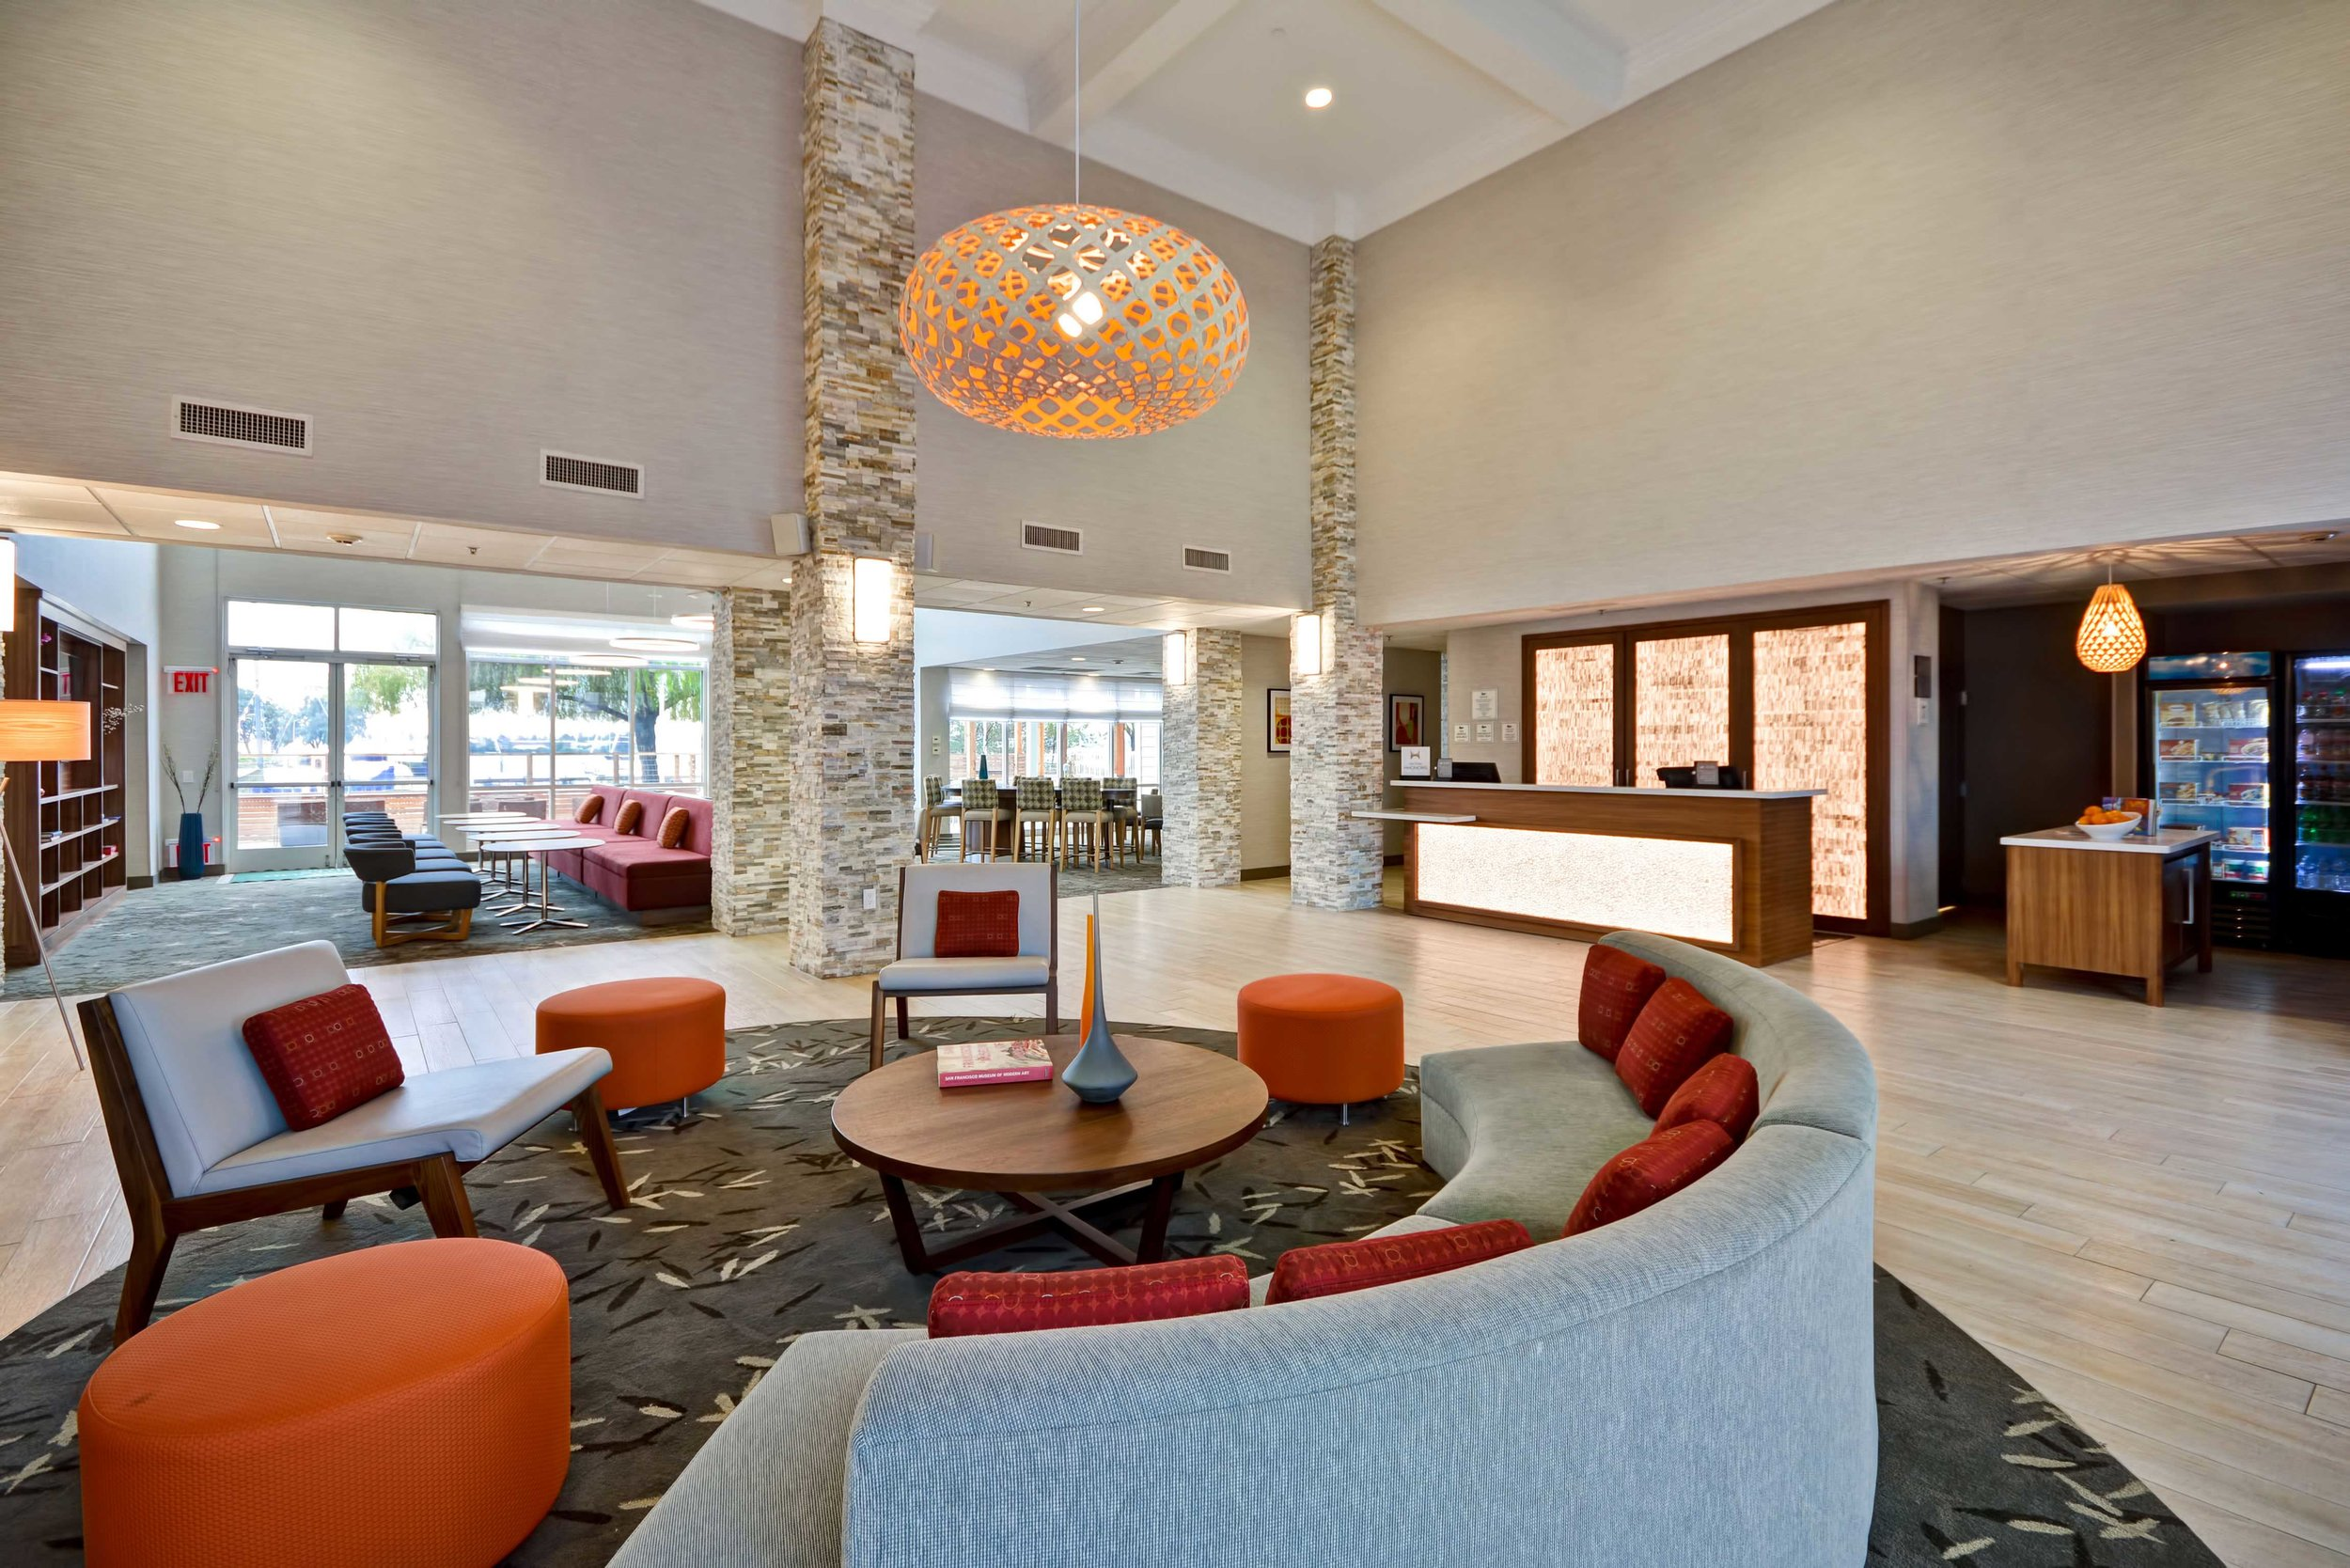 3-Homewood-Suites-Oakland-Lobby-Desk-Suite-Shop.jpg